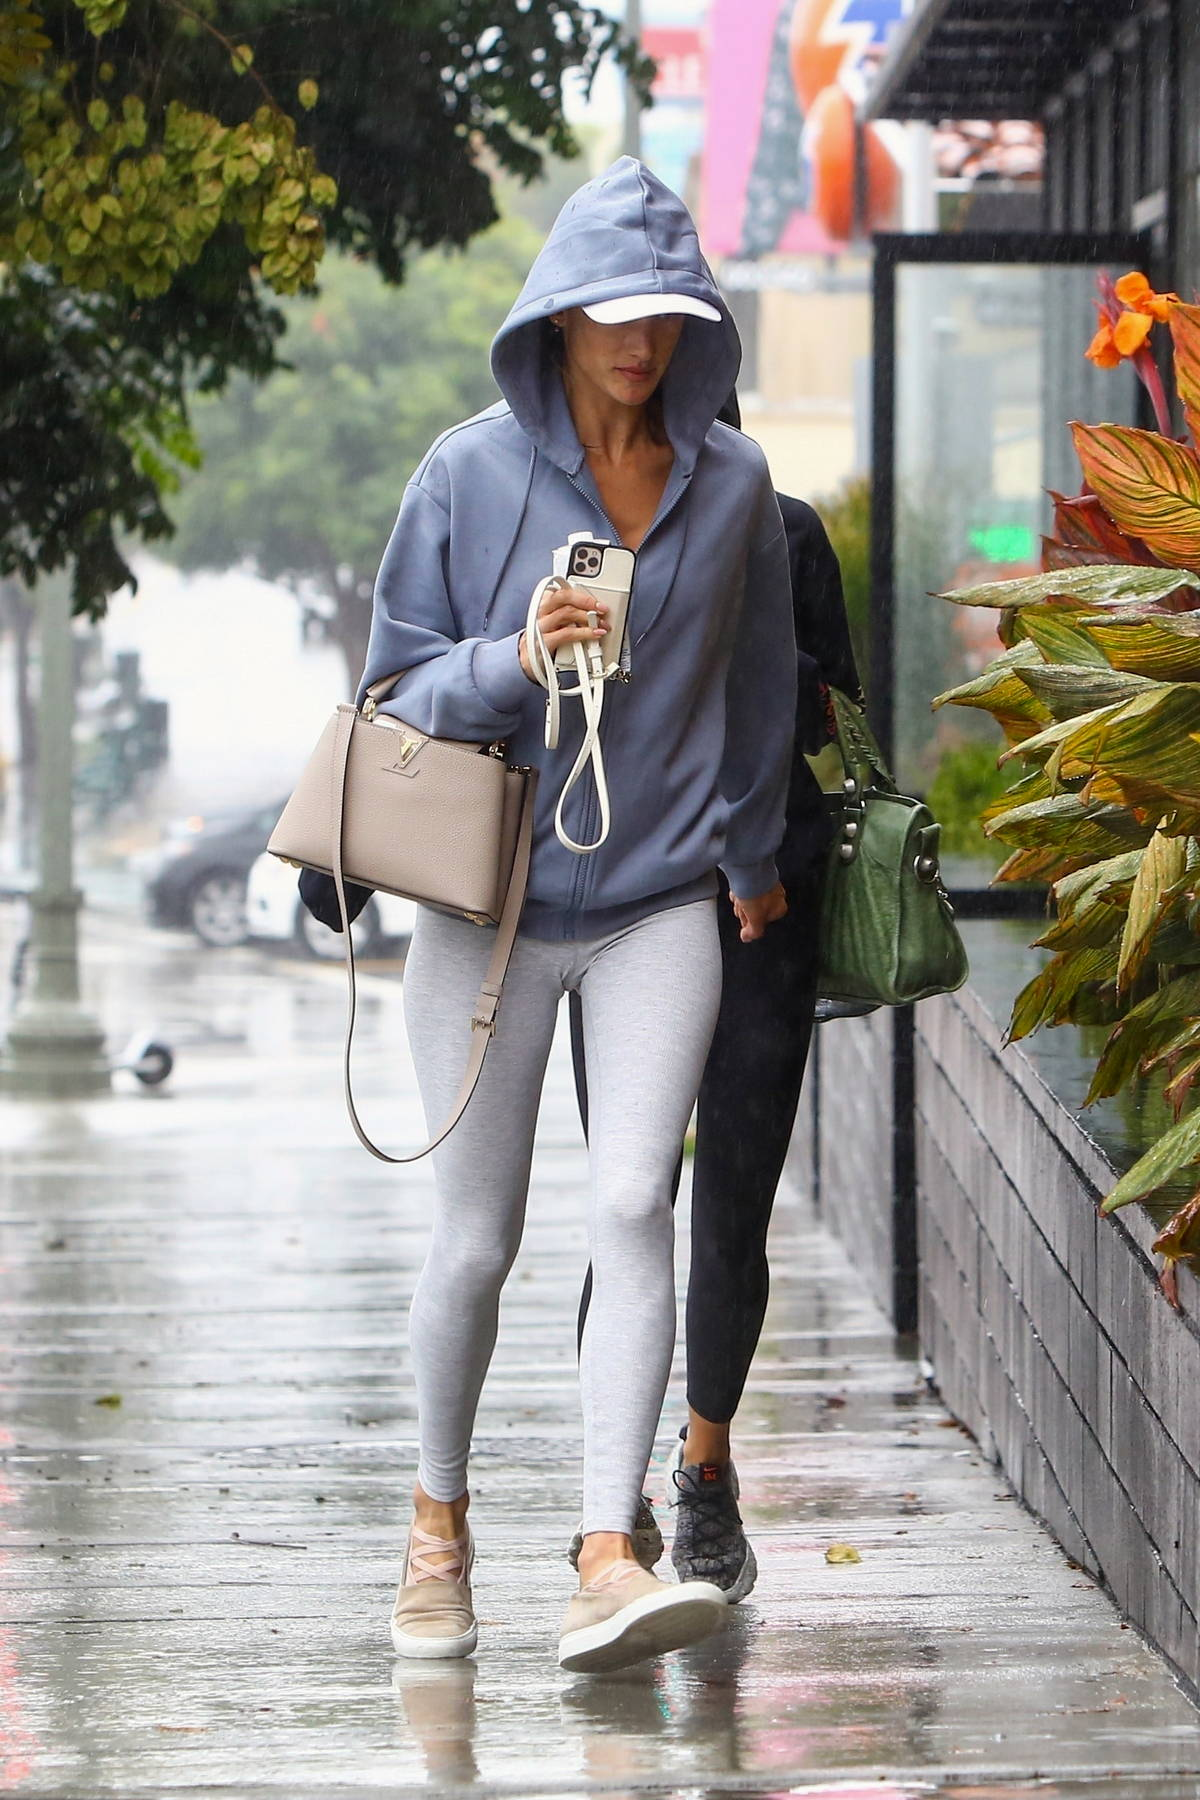 Alessandra sports a hoodie and leggings as she braves the rain while heading to a Pilates class in Santa Monica, California